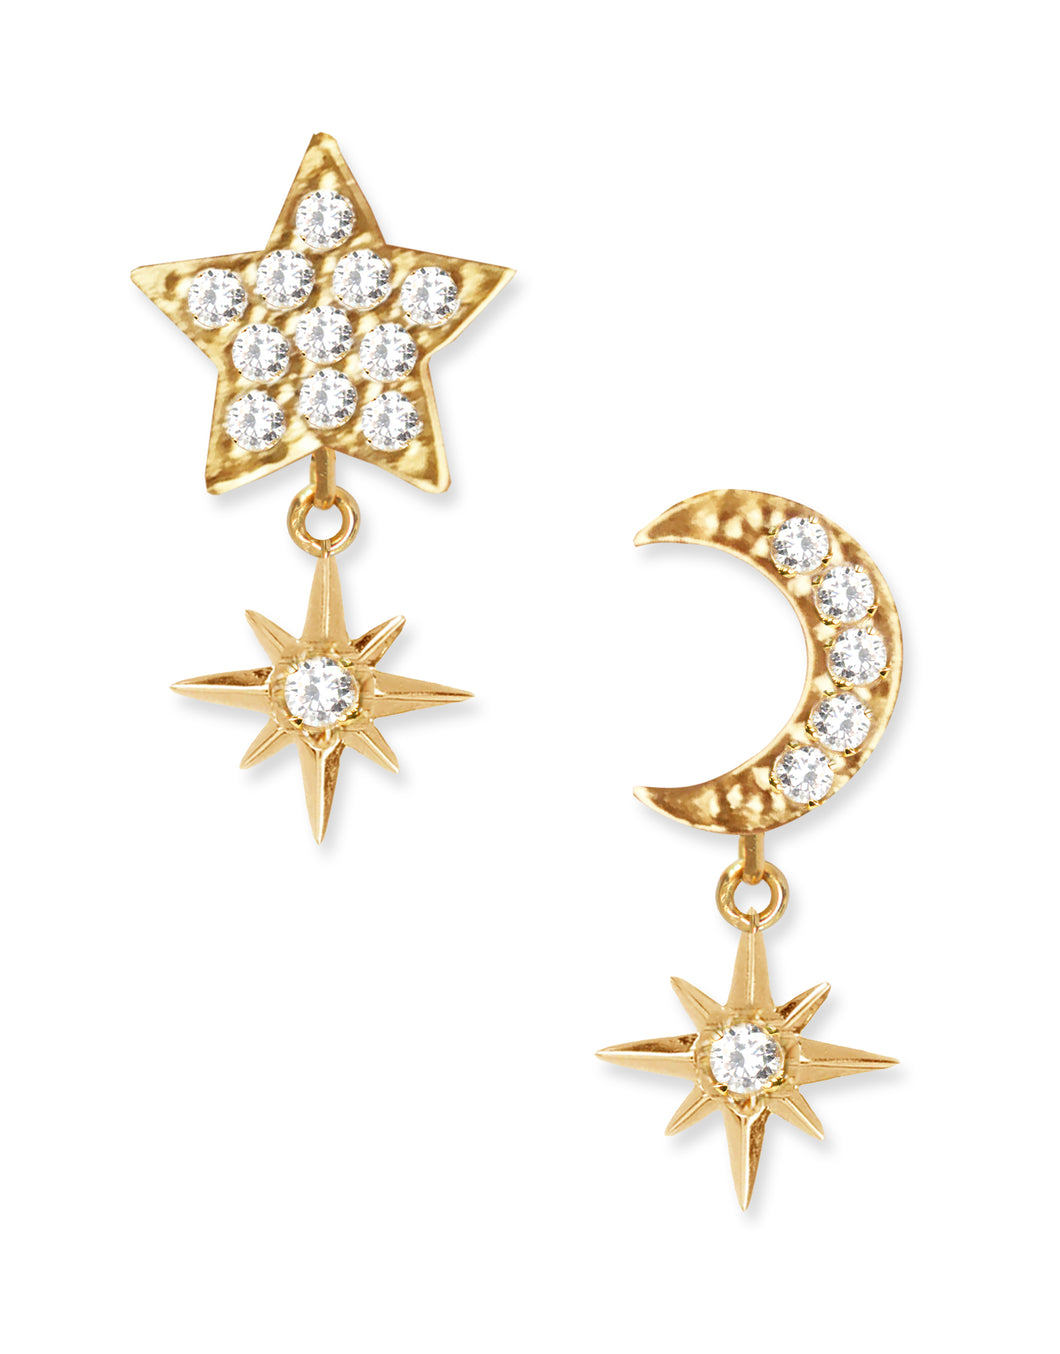 Celestial Studs<br /><i><small>18K Gold Plated with White Topaz</small></i><br />